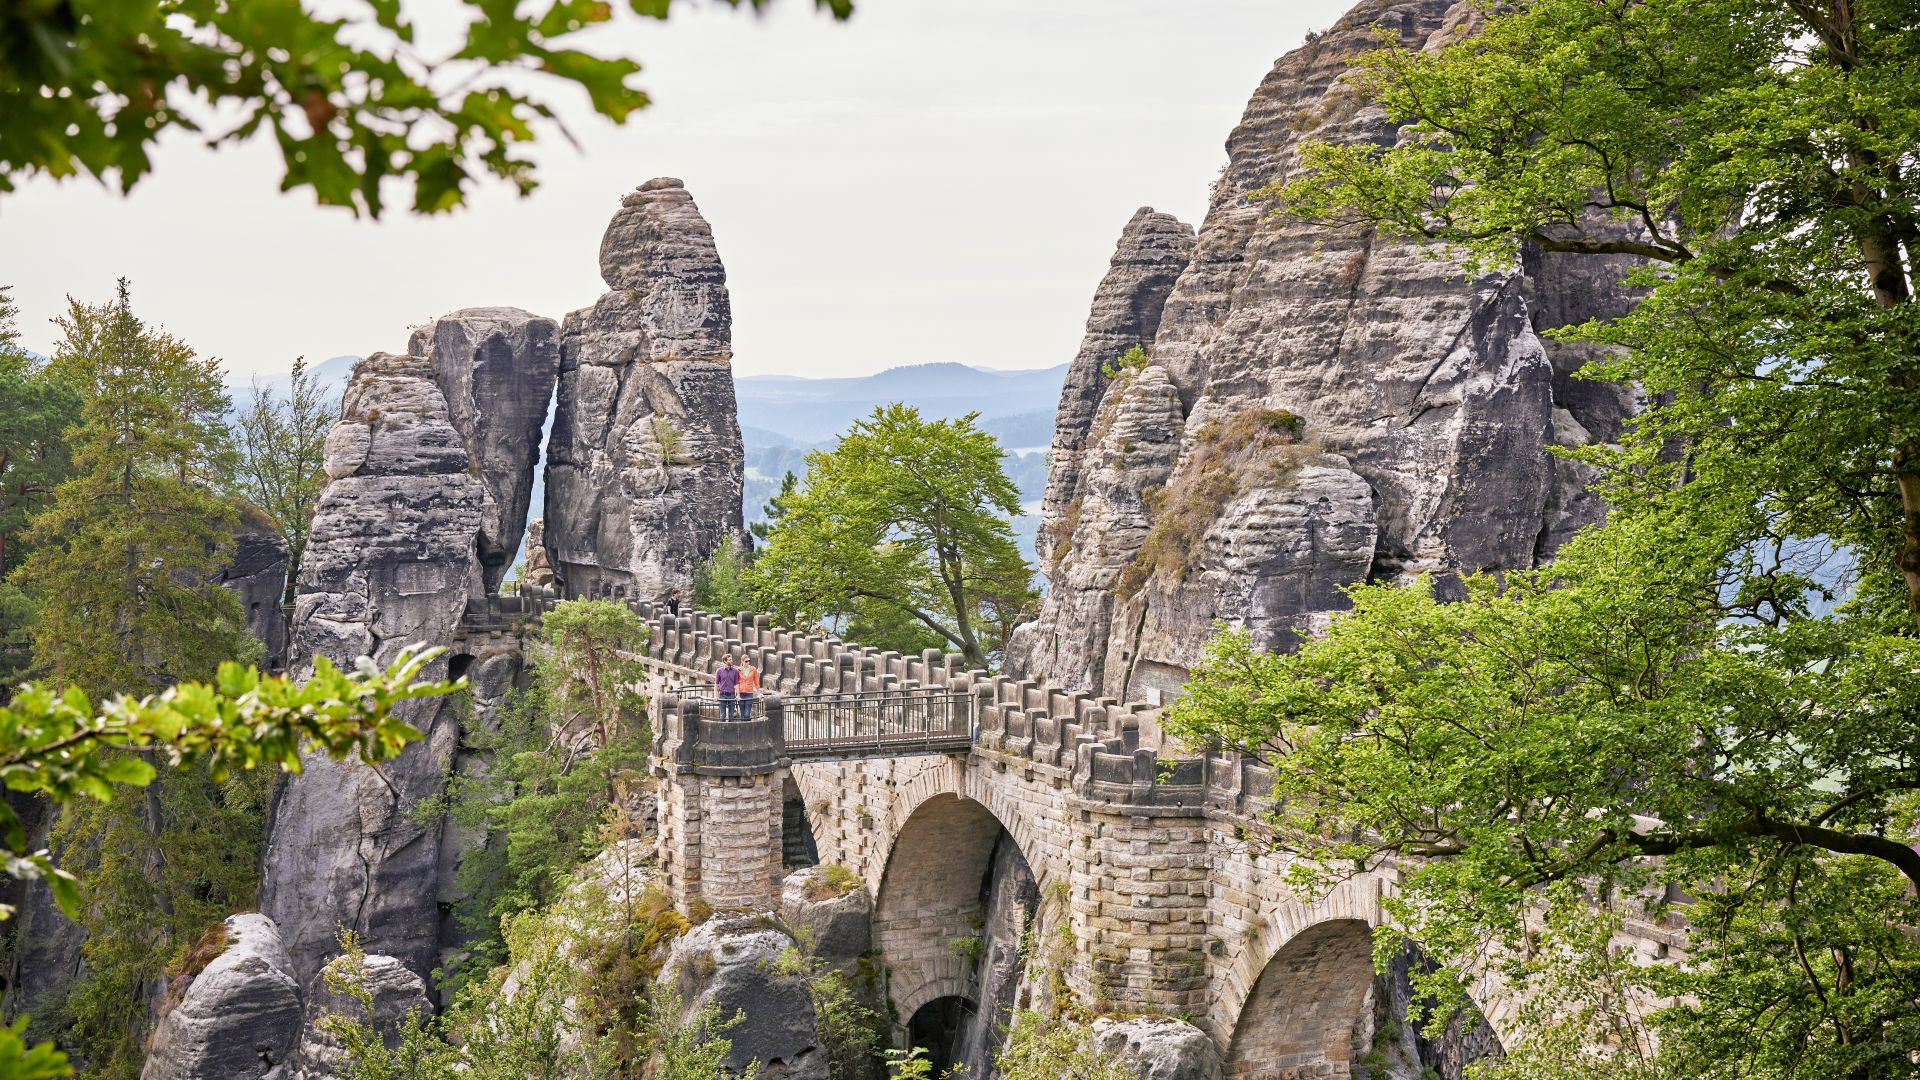 Saxon Switzerland: Hiking in the Elbsanstein Mountains